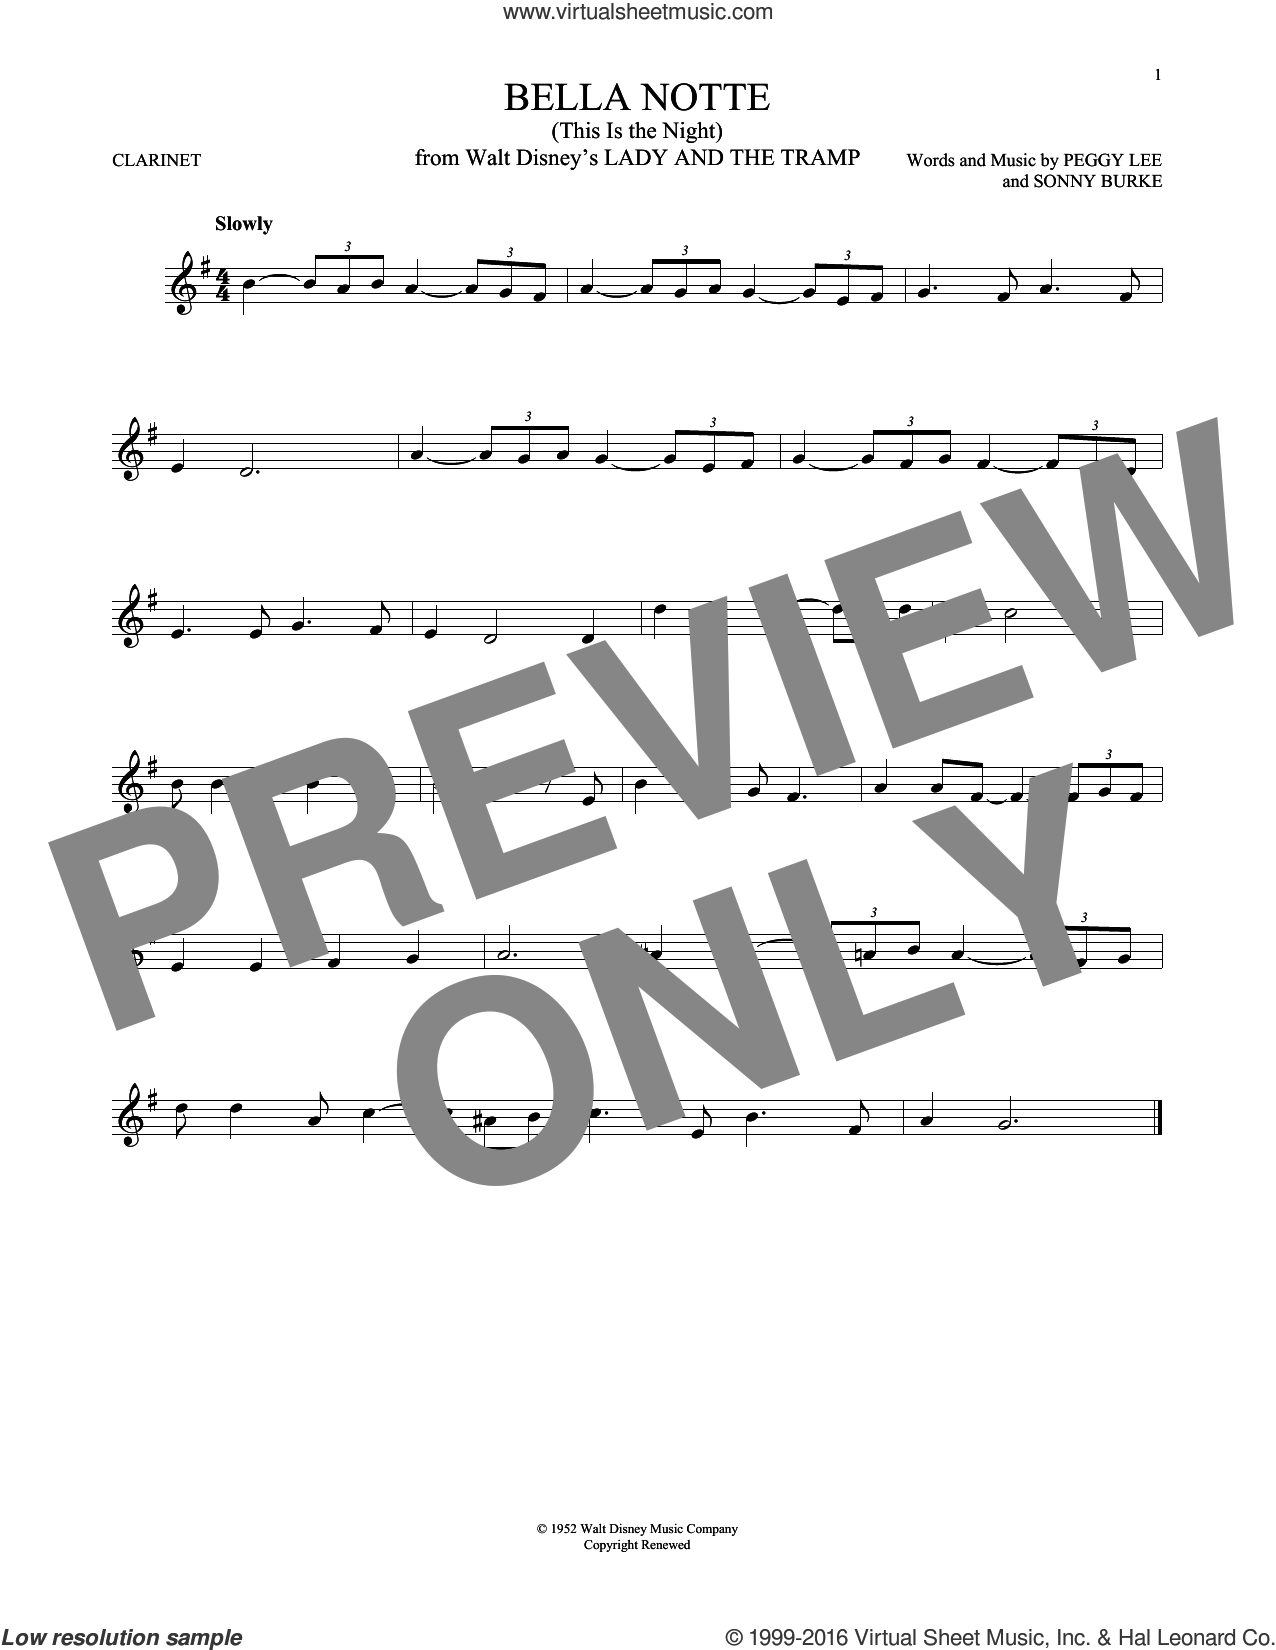 Bella Notte sheet music for clarinet solo by Sonny Burke